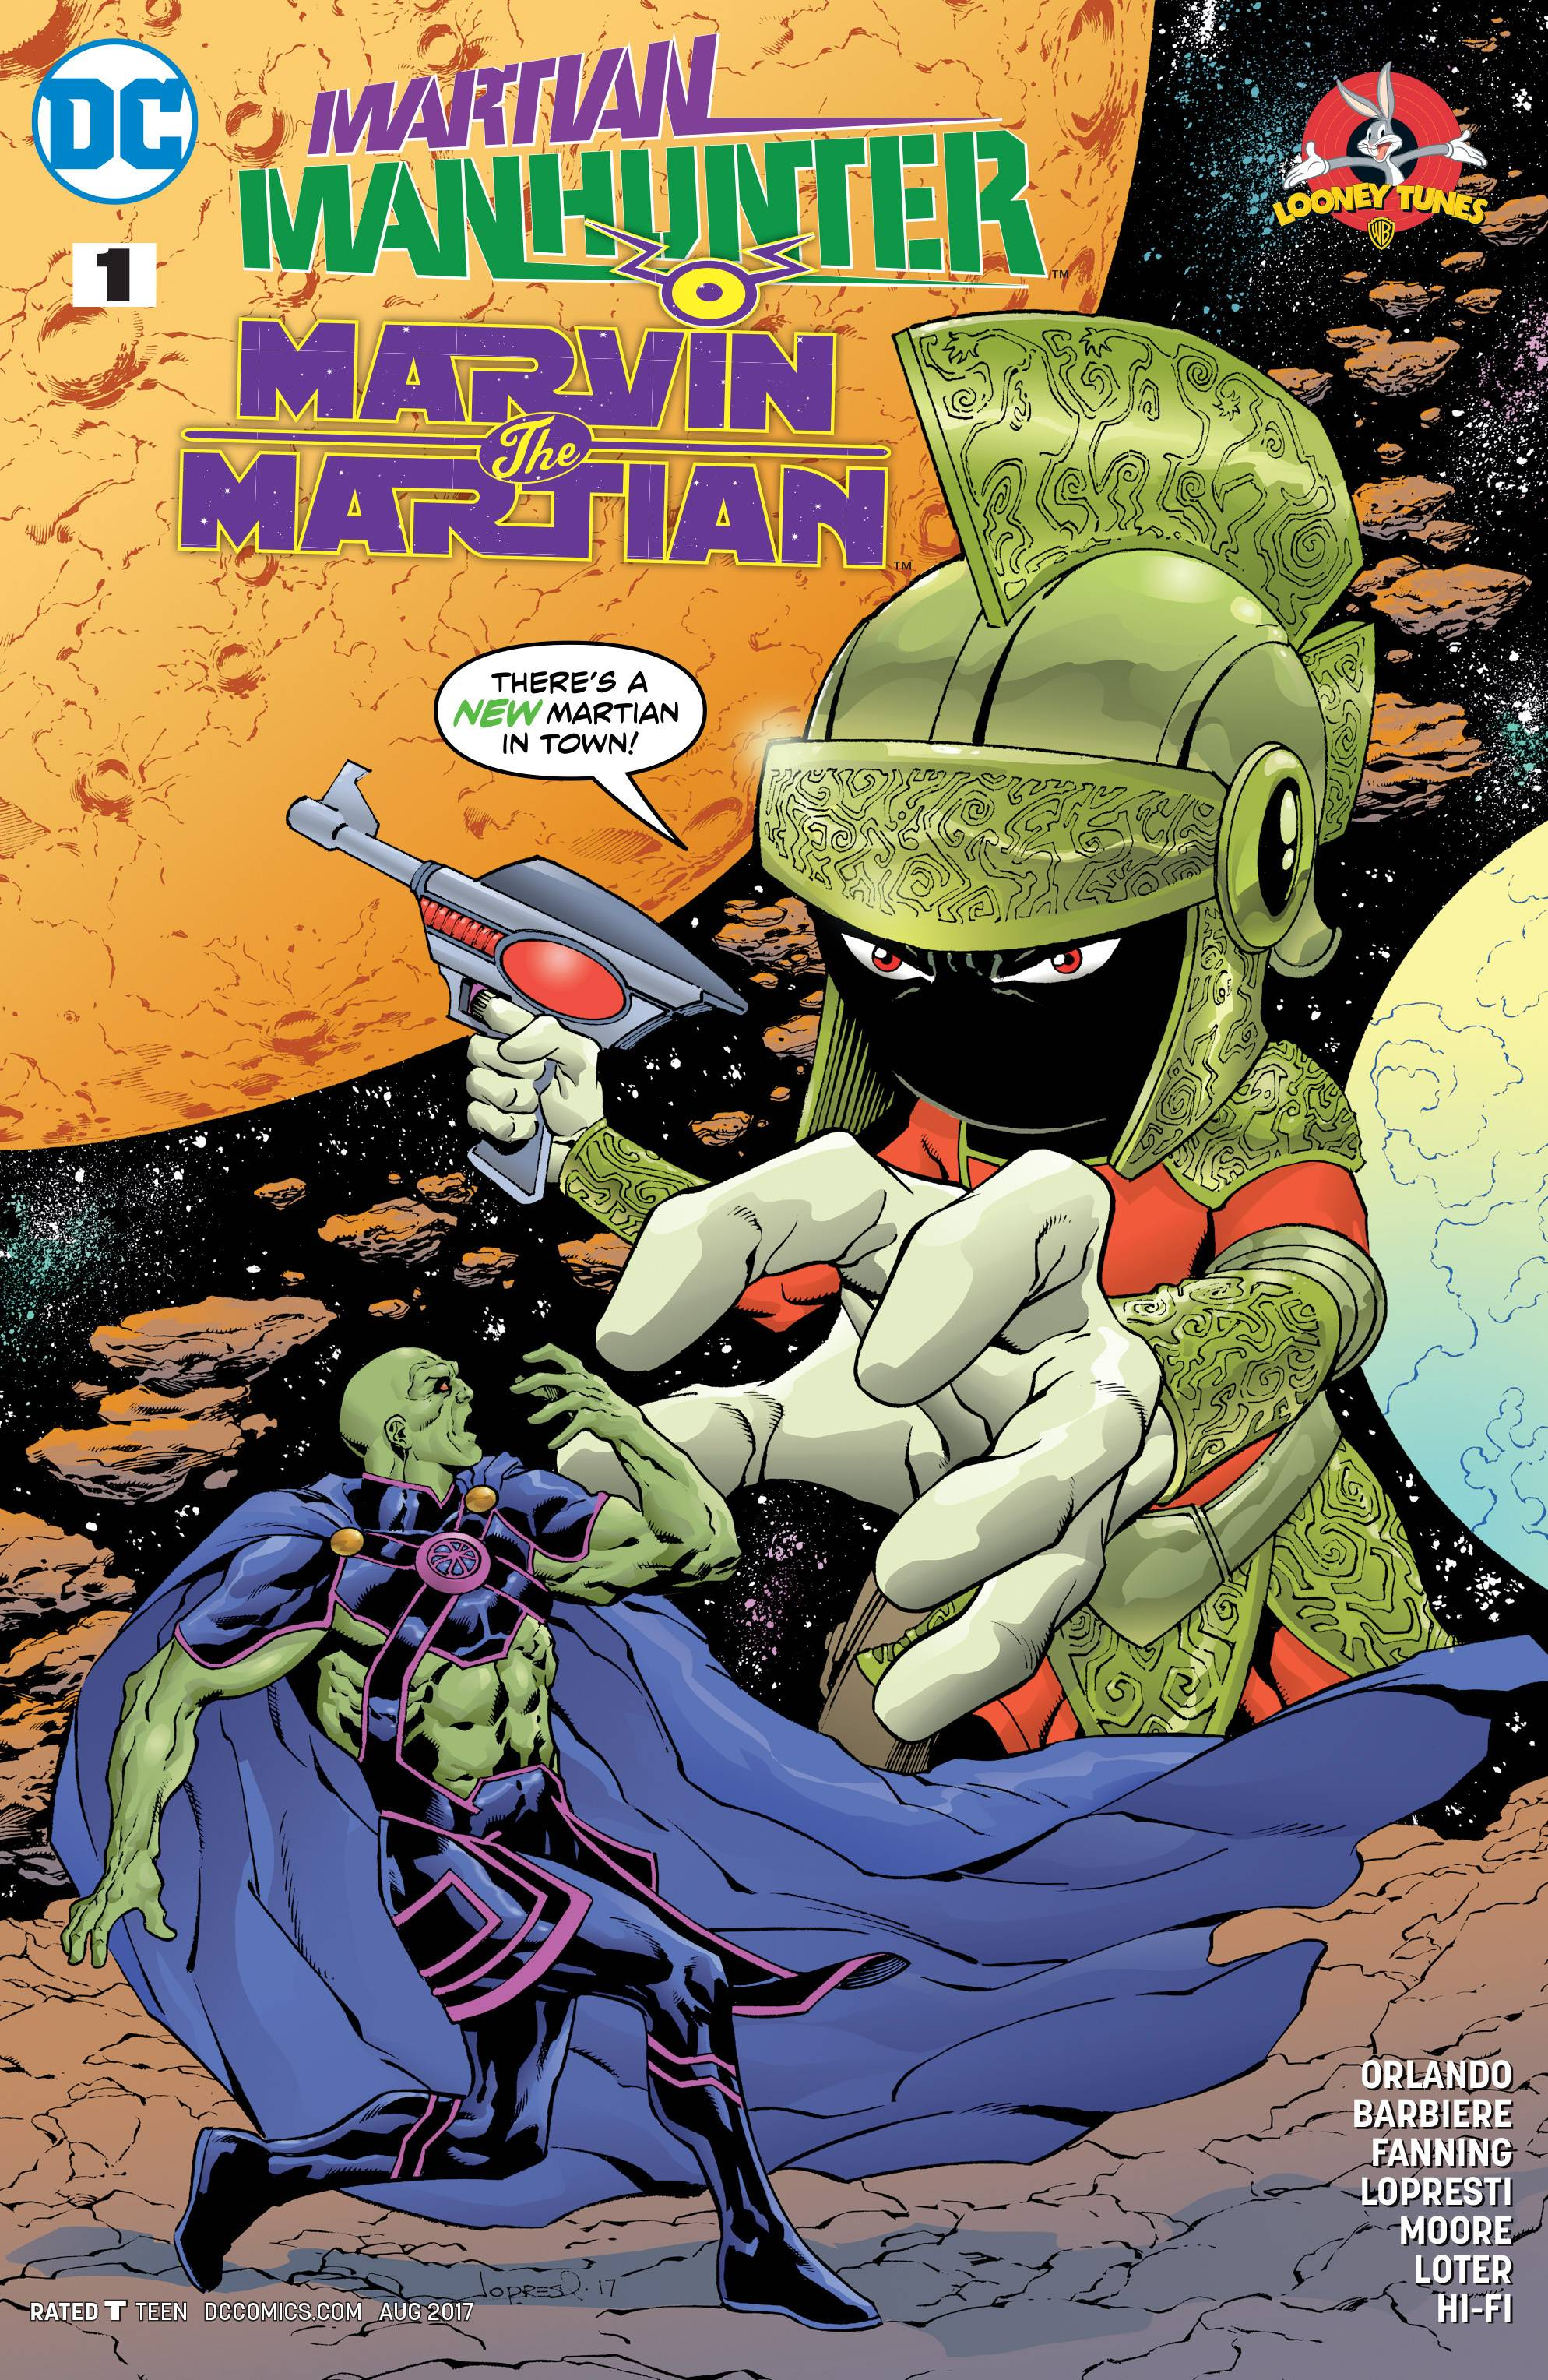 MARTIAN MANHUNTER MARVIN THE MARTIAN SPECIAL 1.jpg